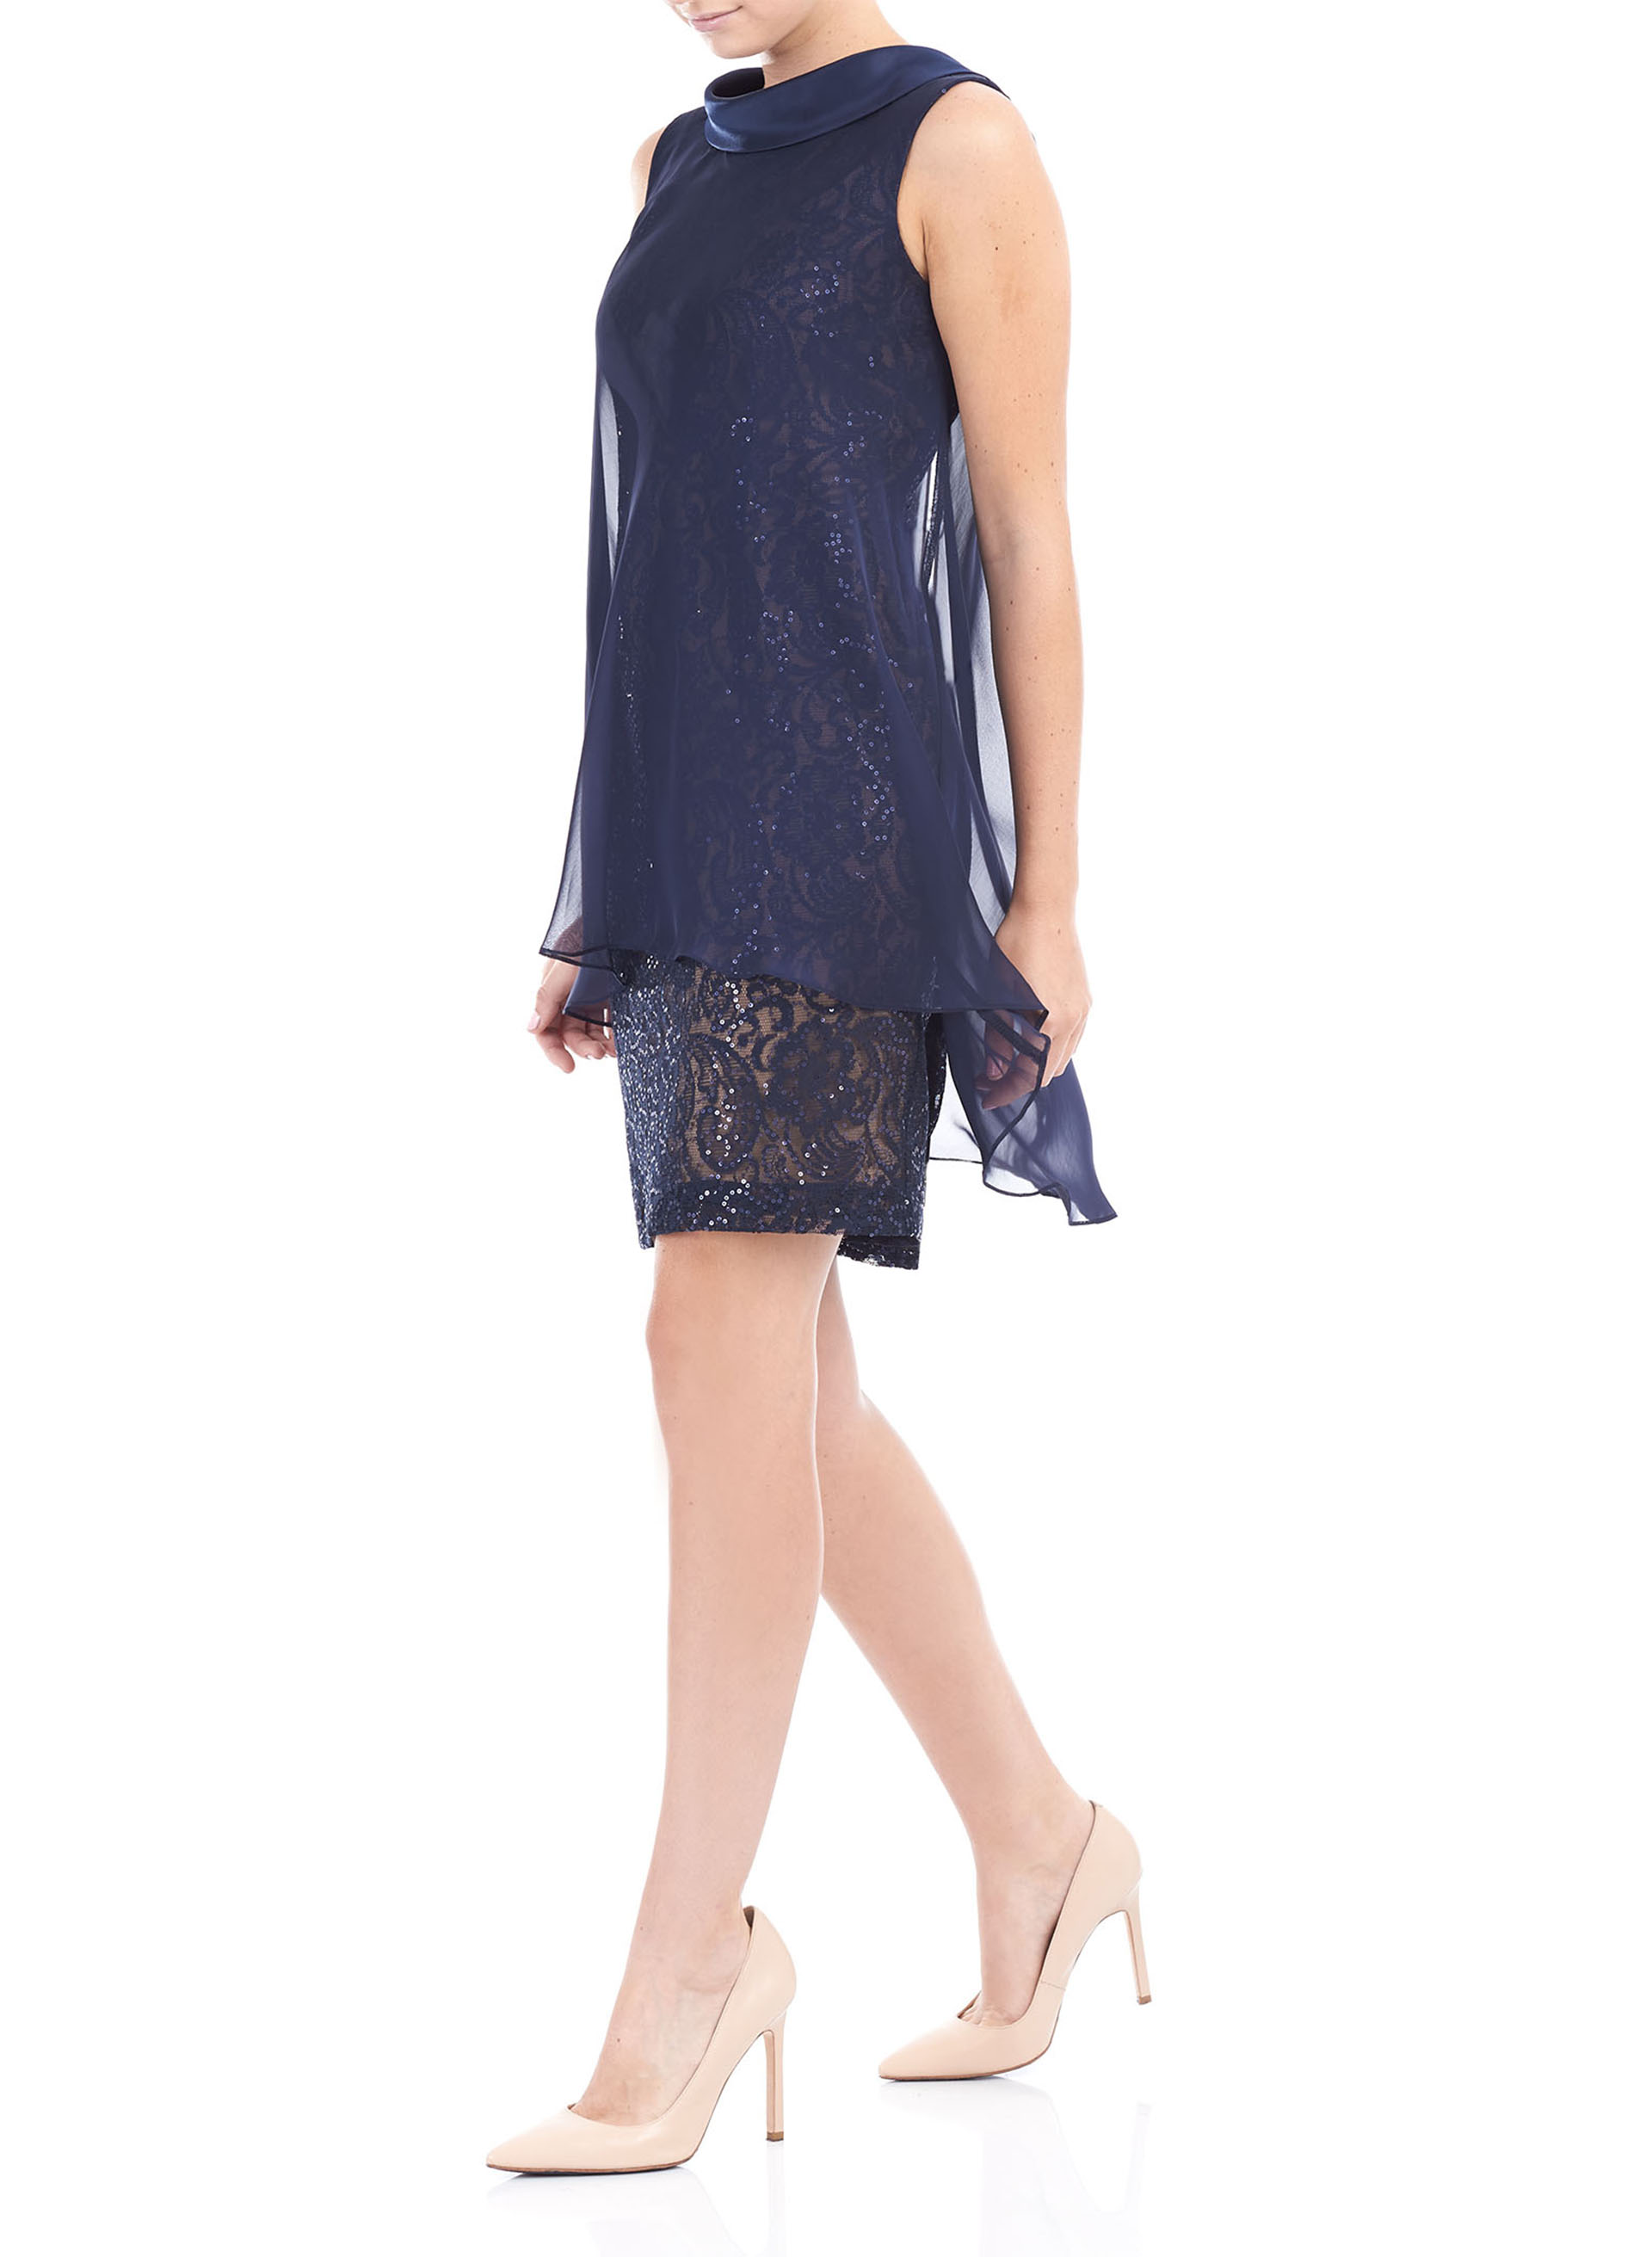 Chiffon Overlay V-Back Dress, Blue, hi-res